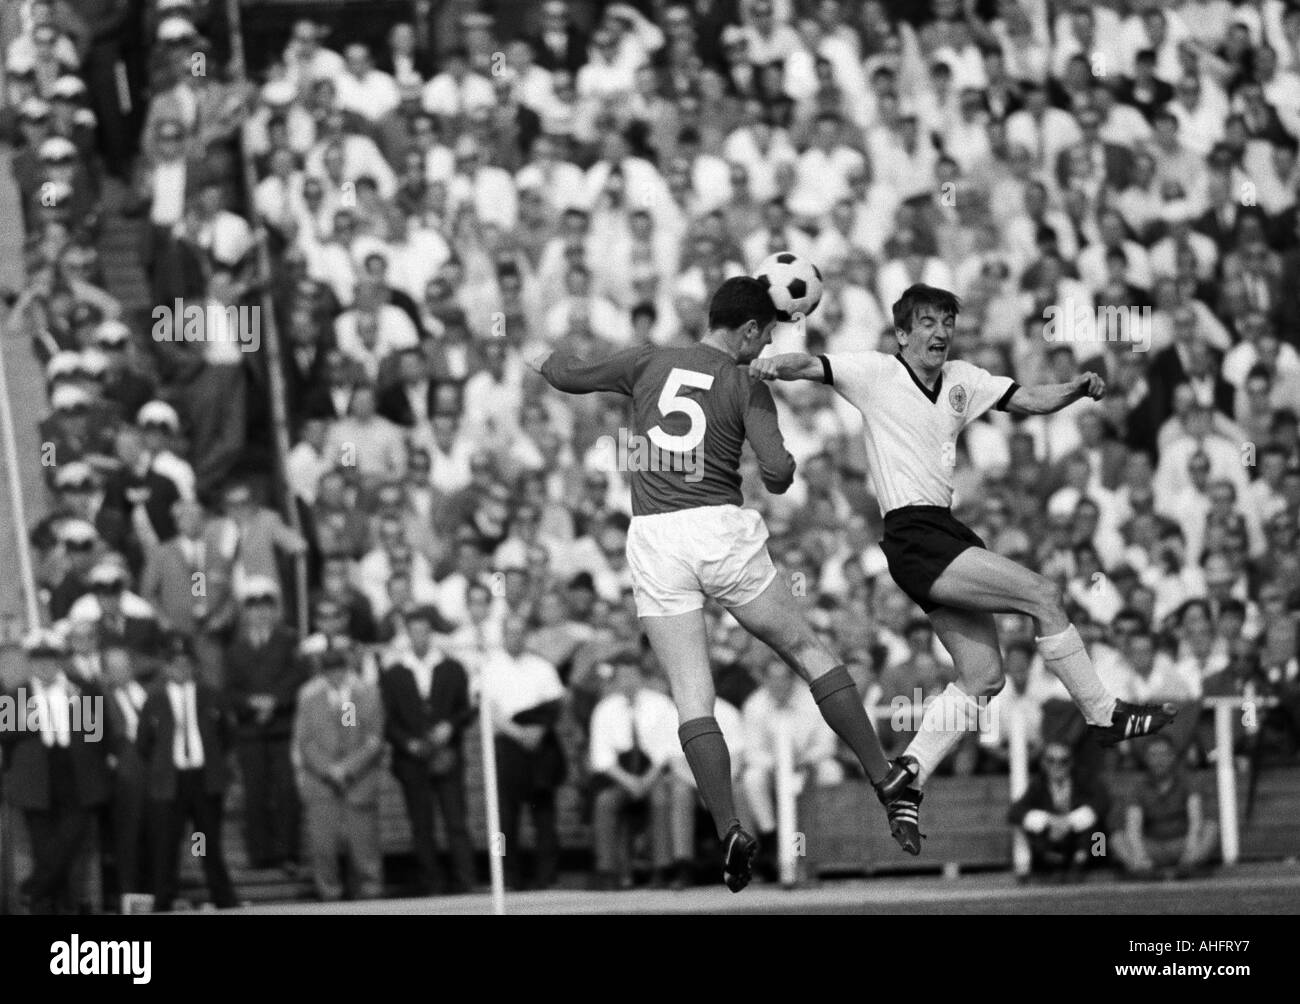 football, international match, 1968, Niedersachsen Stadium in Hanover, Germany versus England 1:0, scene of the match, duel between Hennes Loehr (FRG) right and Brian Labone (England, 5) - Stock Image